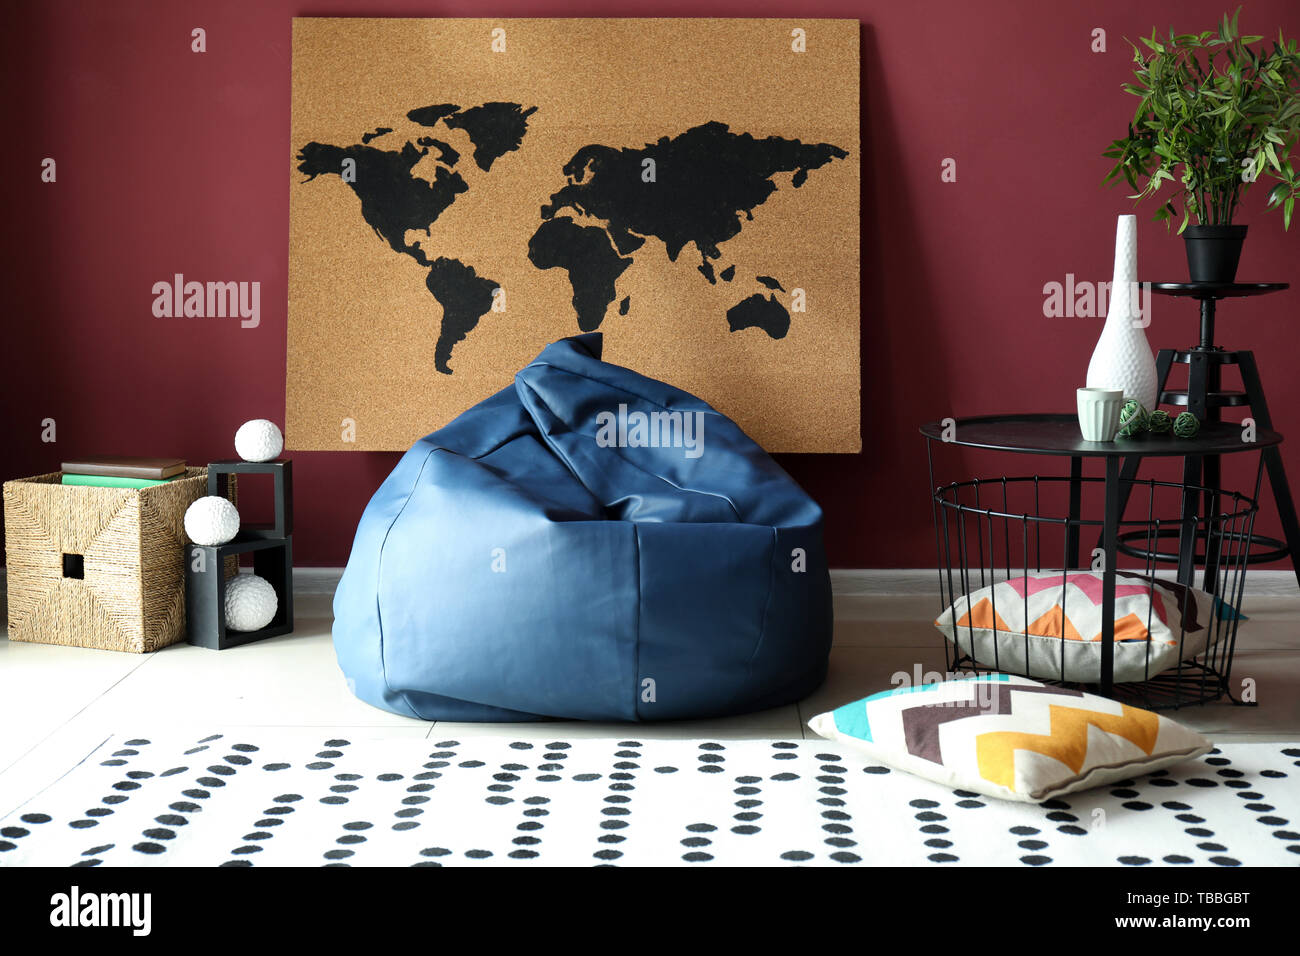 Interior of modern room with picture of world map on wall - Stock Image